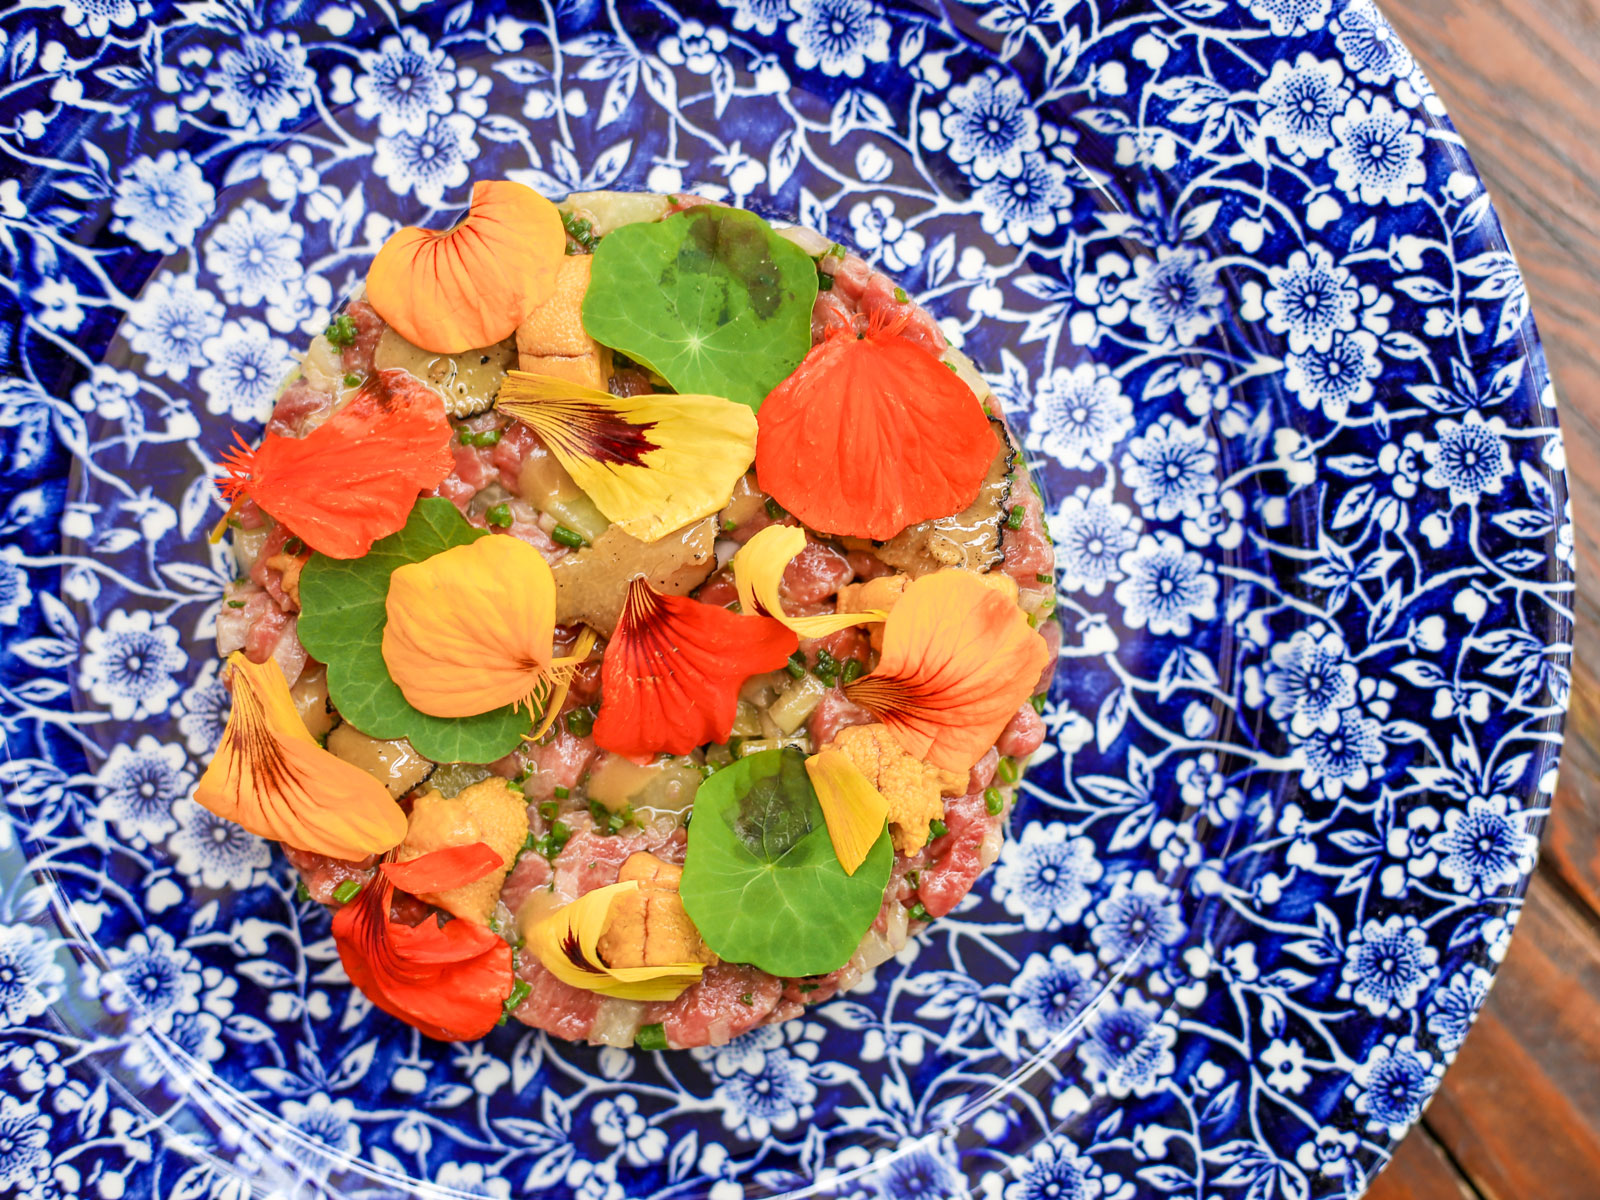 Edible Flowers 101: How to Cook with Hibiscus, Nasturtium, Marigold and More